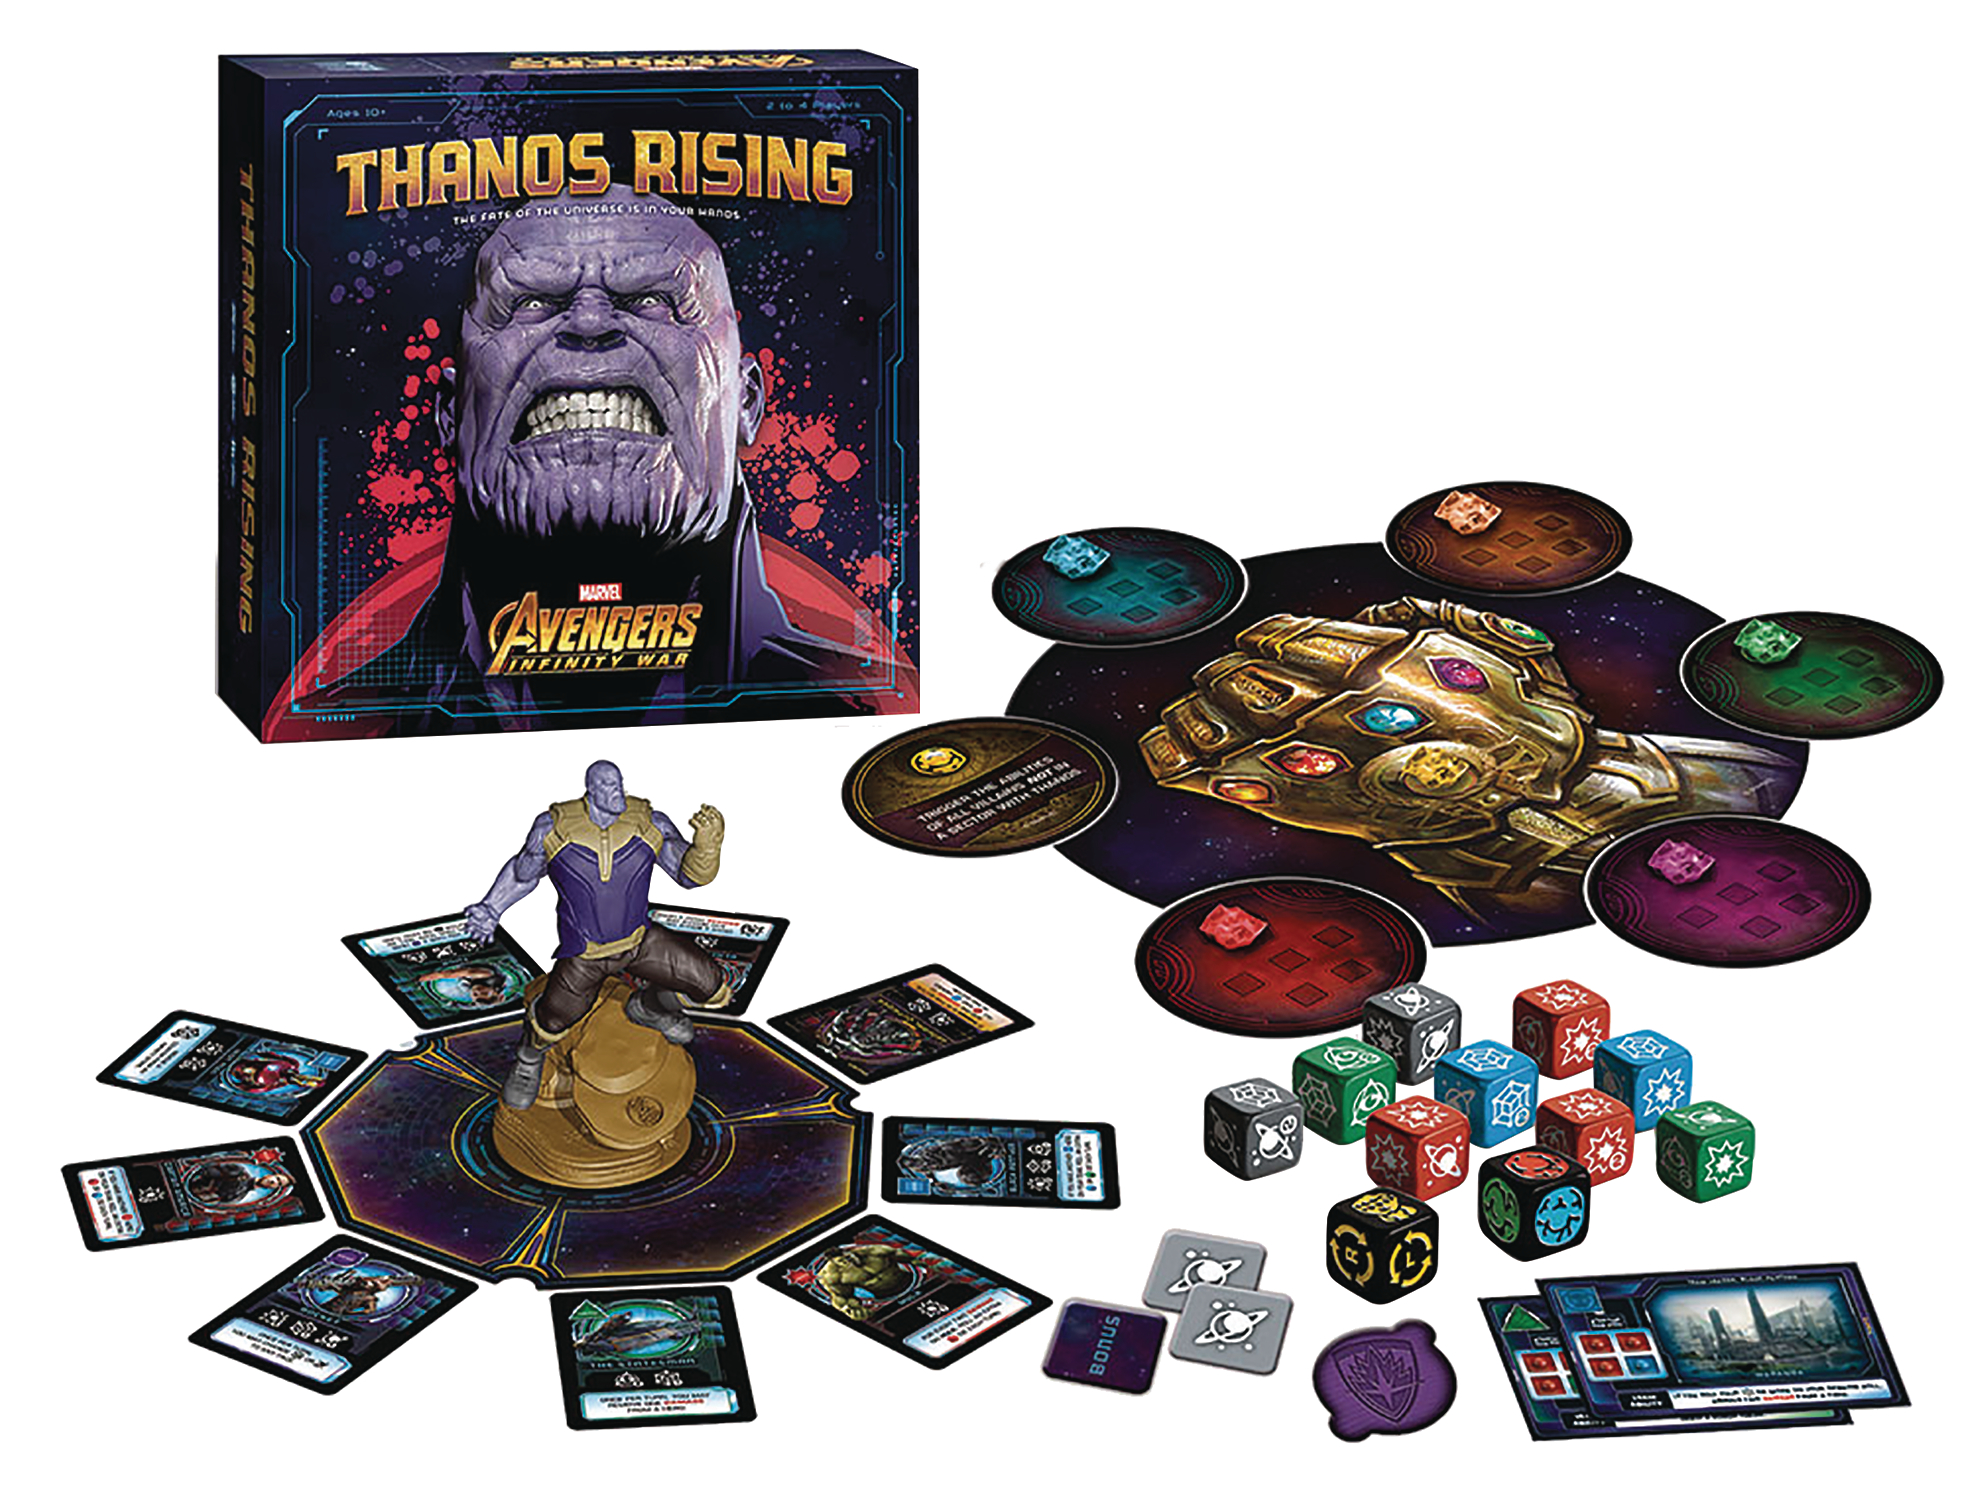 THANOS RISING AVENGERS INFINITY WAR BOARD GAME